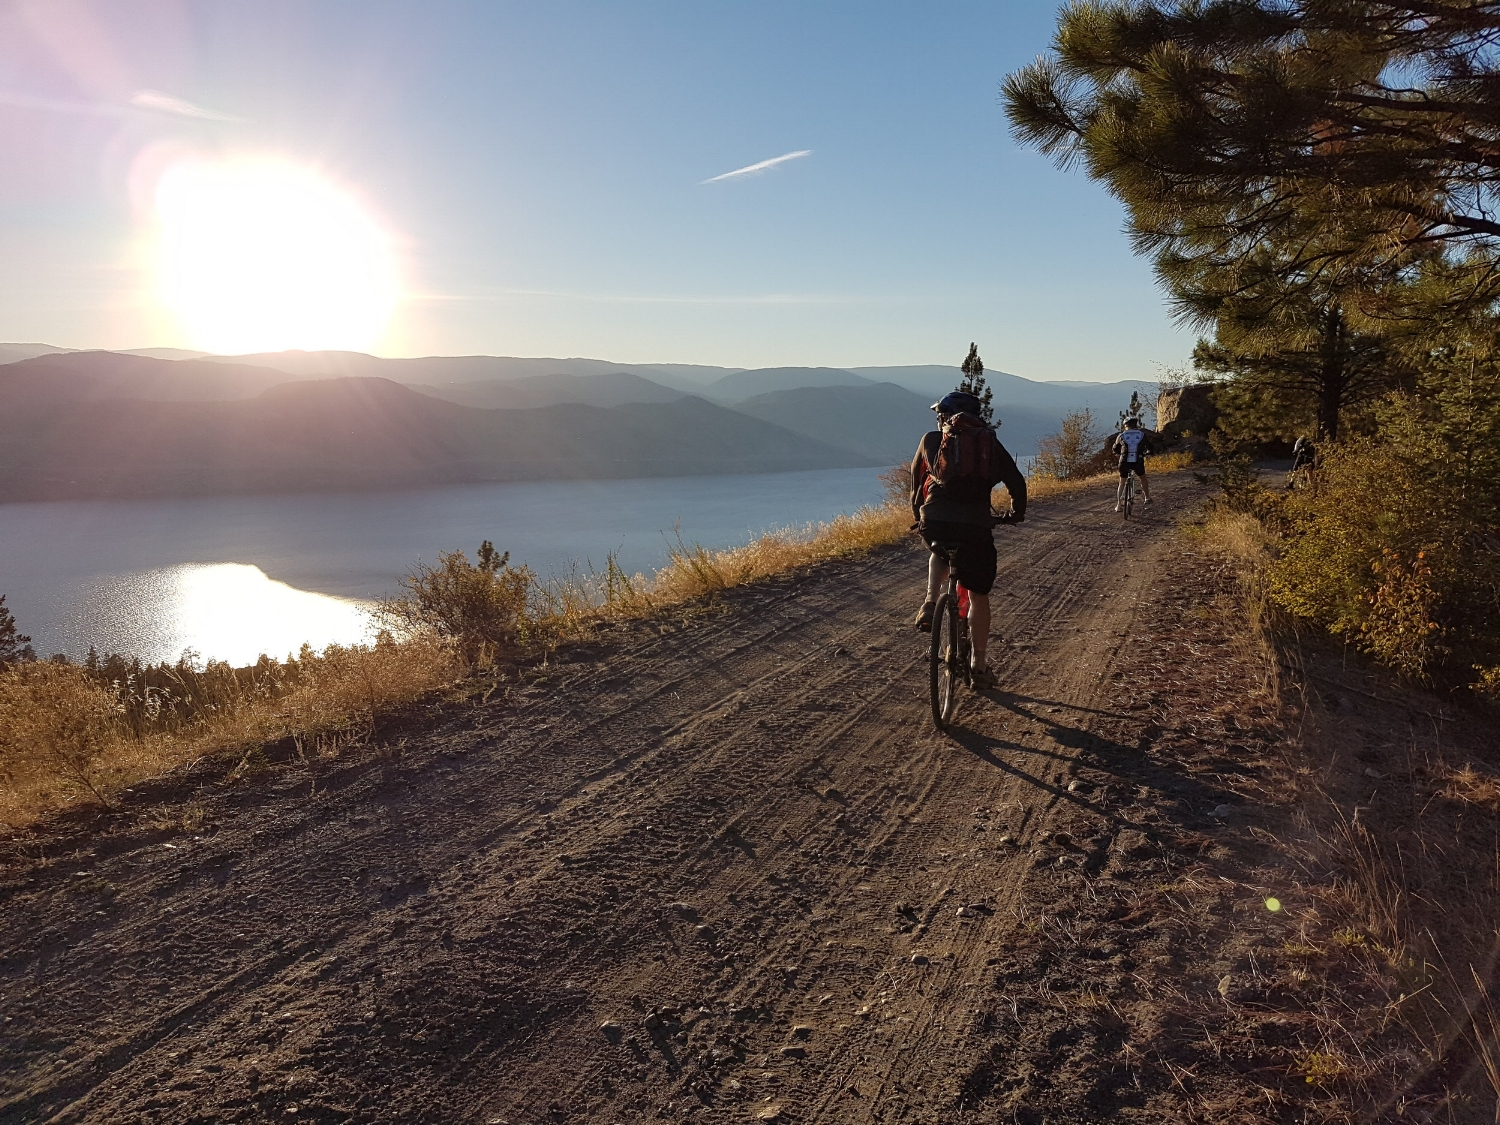 Bike touring along the Okanagan lake on the KVR trail